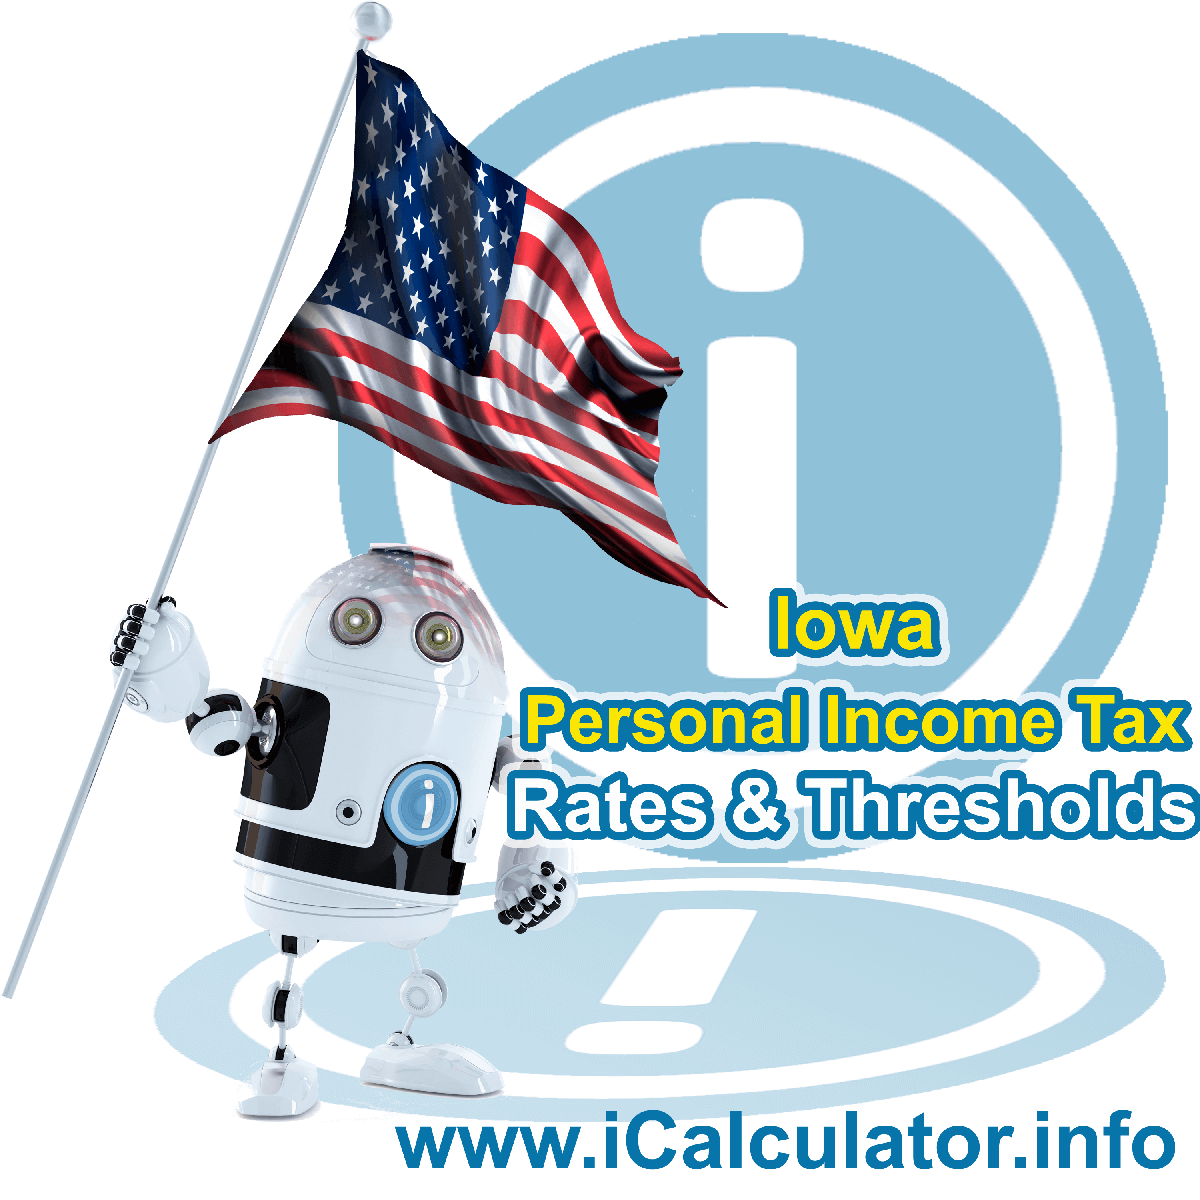 Iowa State Tax Tables 2015. This image displays details of the Iowa State Tax Tables for the 2015 tax return year which is provided in support of the 2015 US Tax Calculator